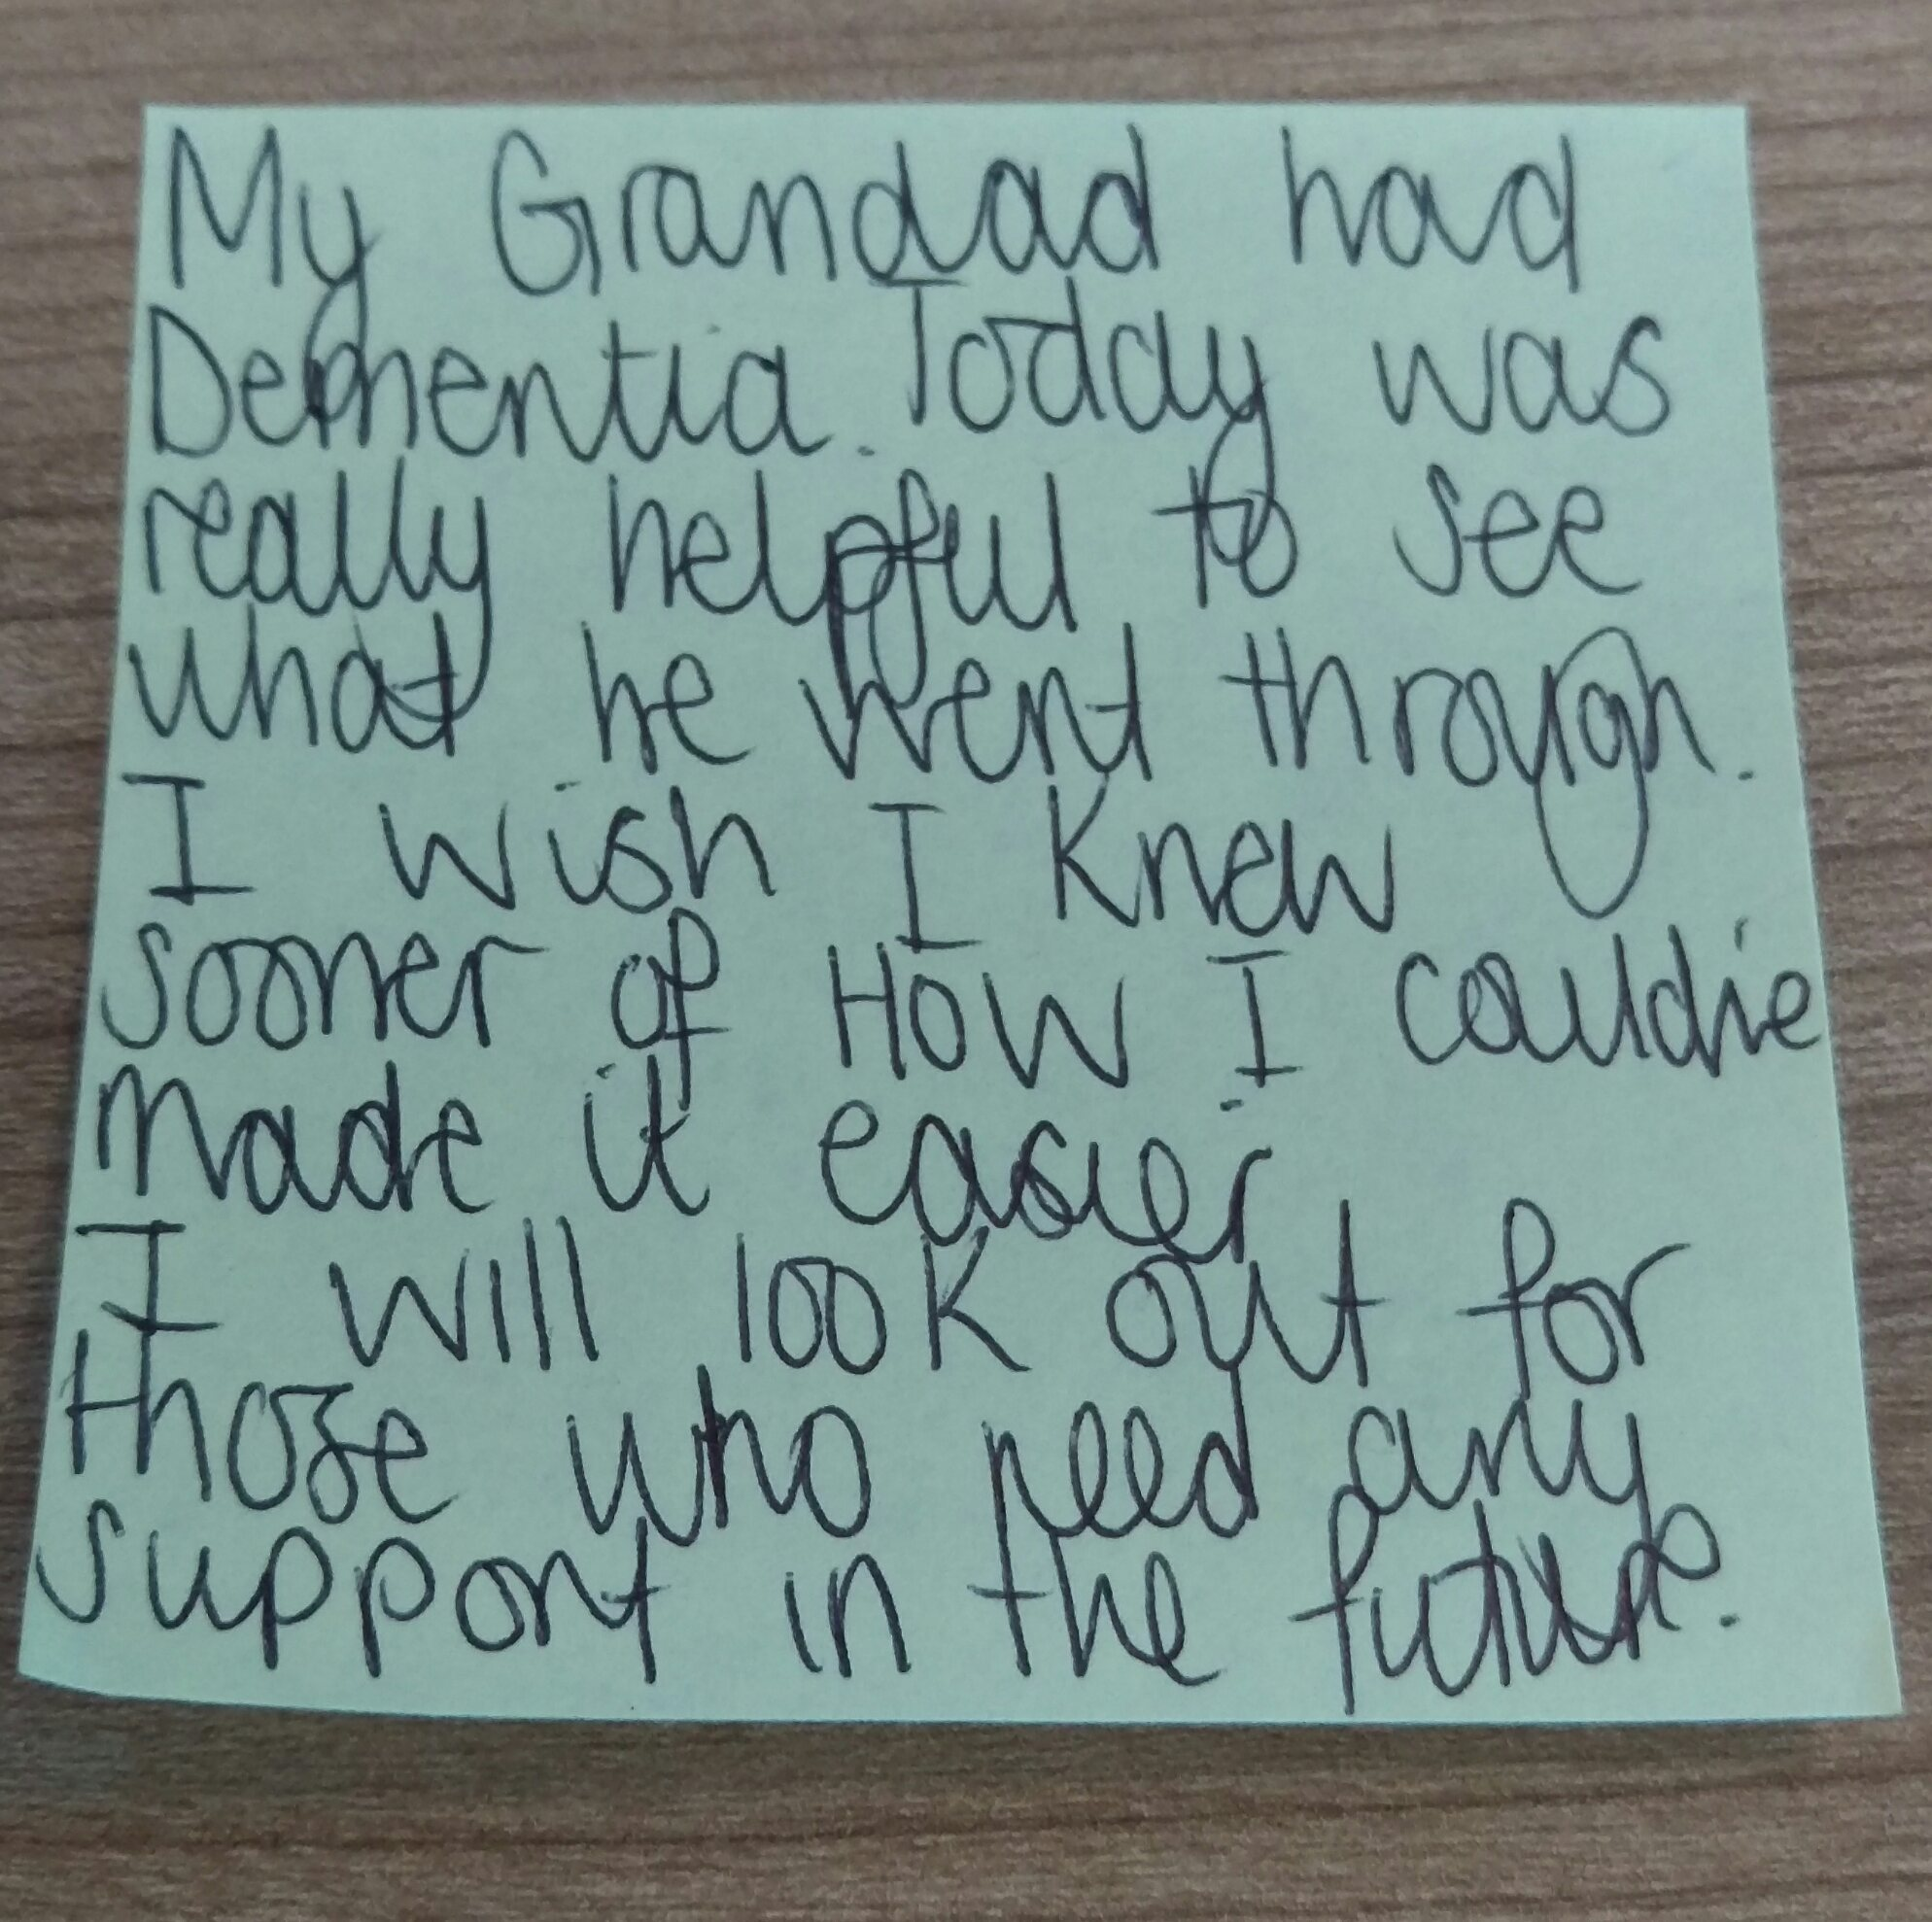 "Today's #dementiado post-it comes from @TarporleyHigh   ""I wish I knew sooner of how I could've made it easier""  😔  #FabChangeDay https://t.co/4vXklTypSd"